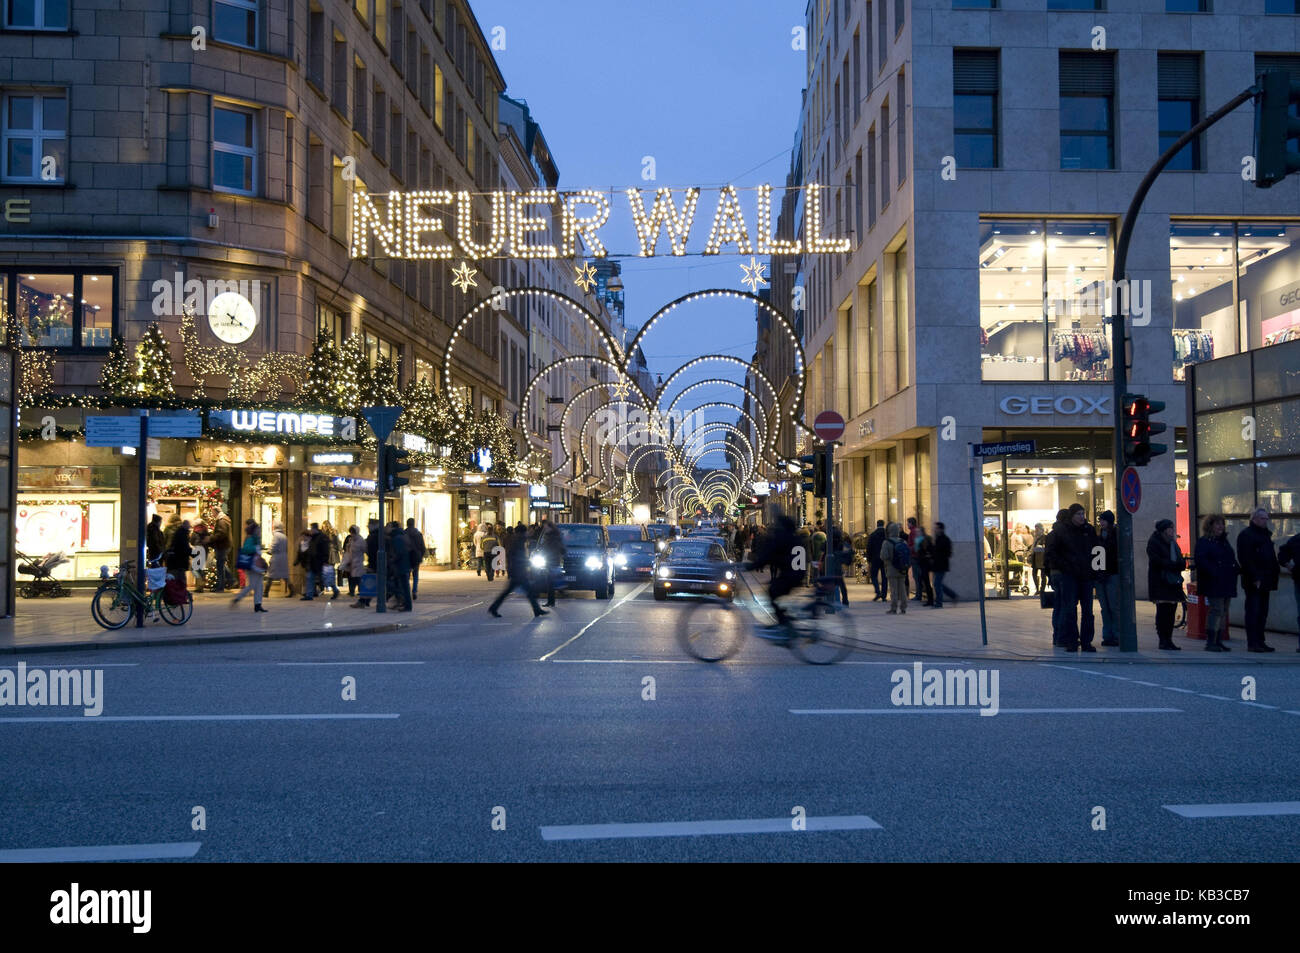 Germany, Hamburg, view of the Jungfernstieg in the new rampart, shopping street, Christmas decoration, dusk, Europe, - Stock Image